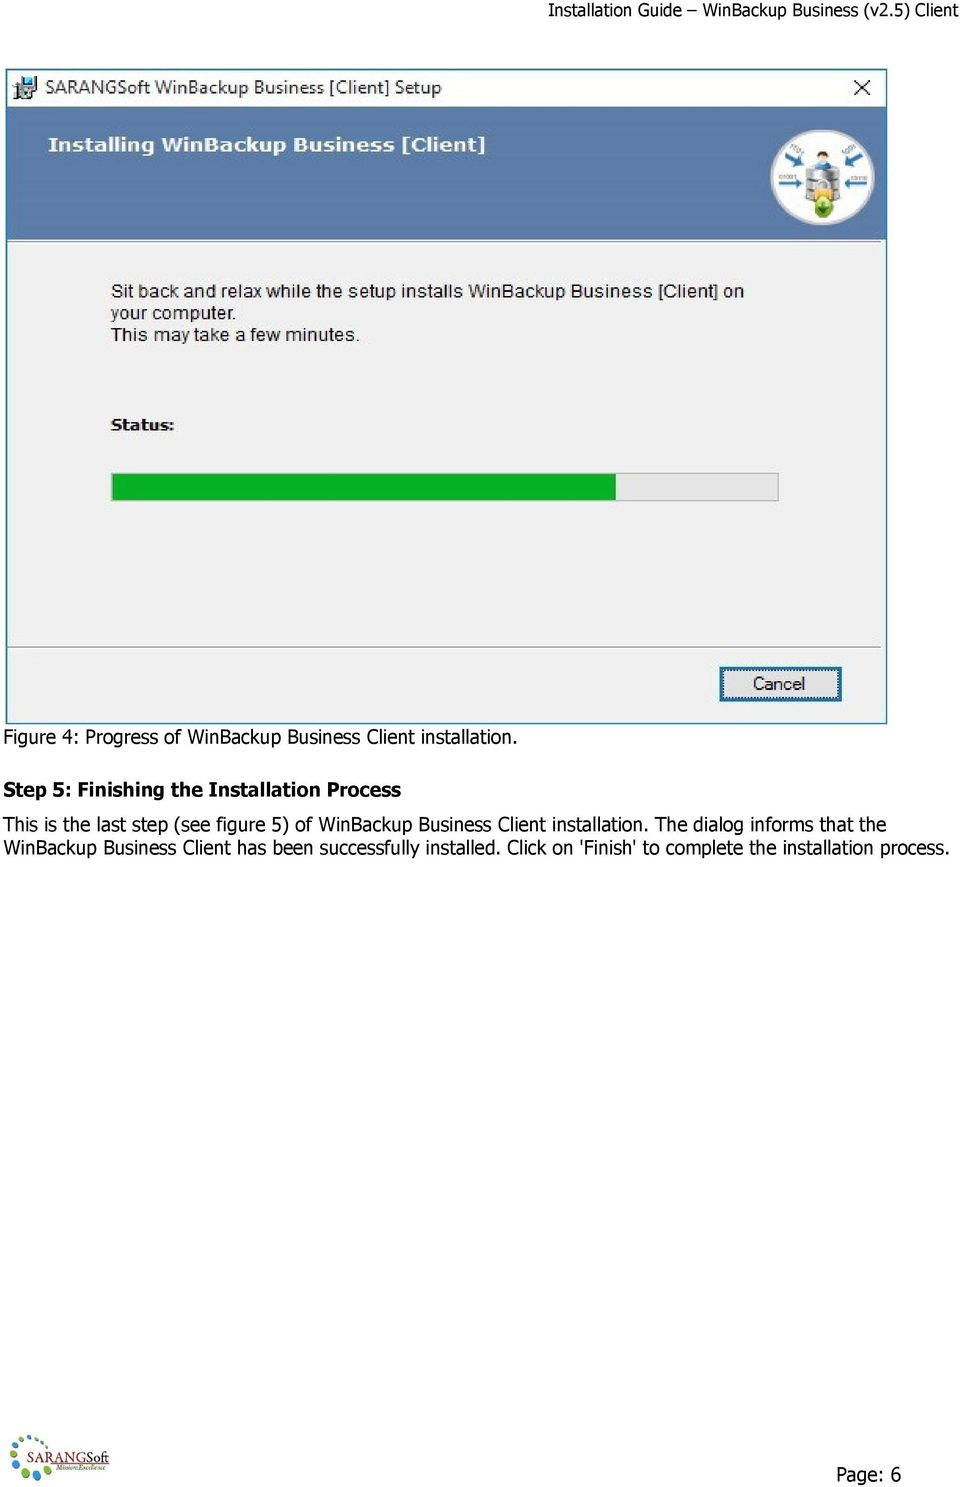 WinBackup Business Client installation.